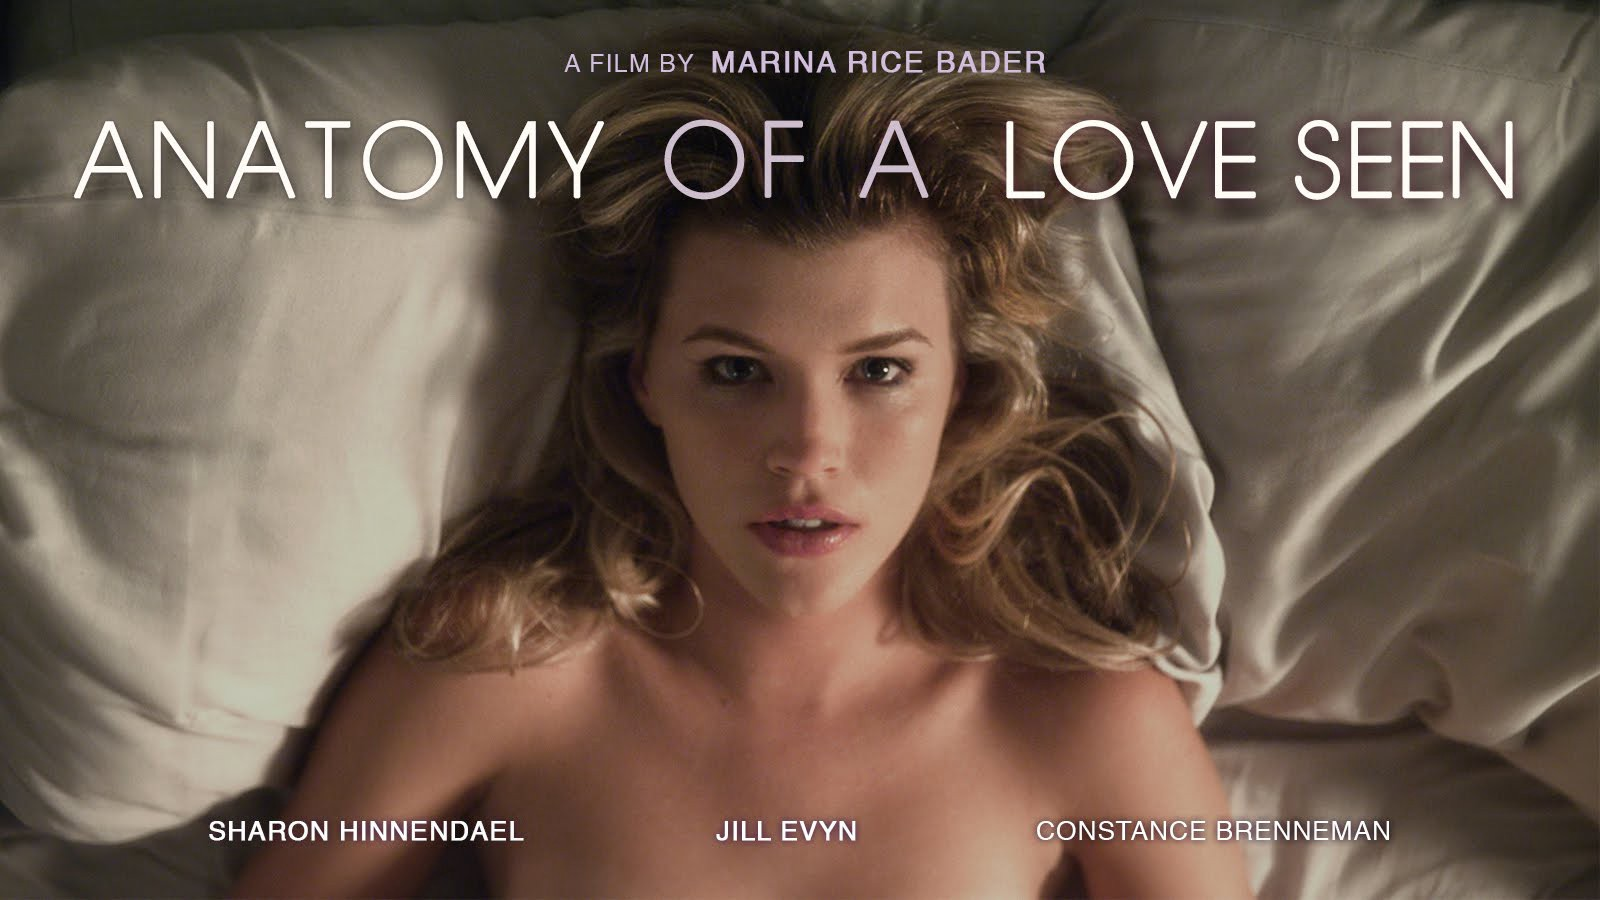 Anatomy Of A Love Seen En Español don't diy, diwo — a vod case study with anatomy of a love seen